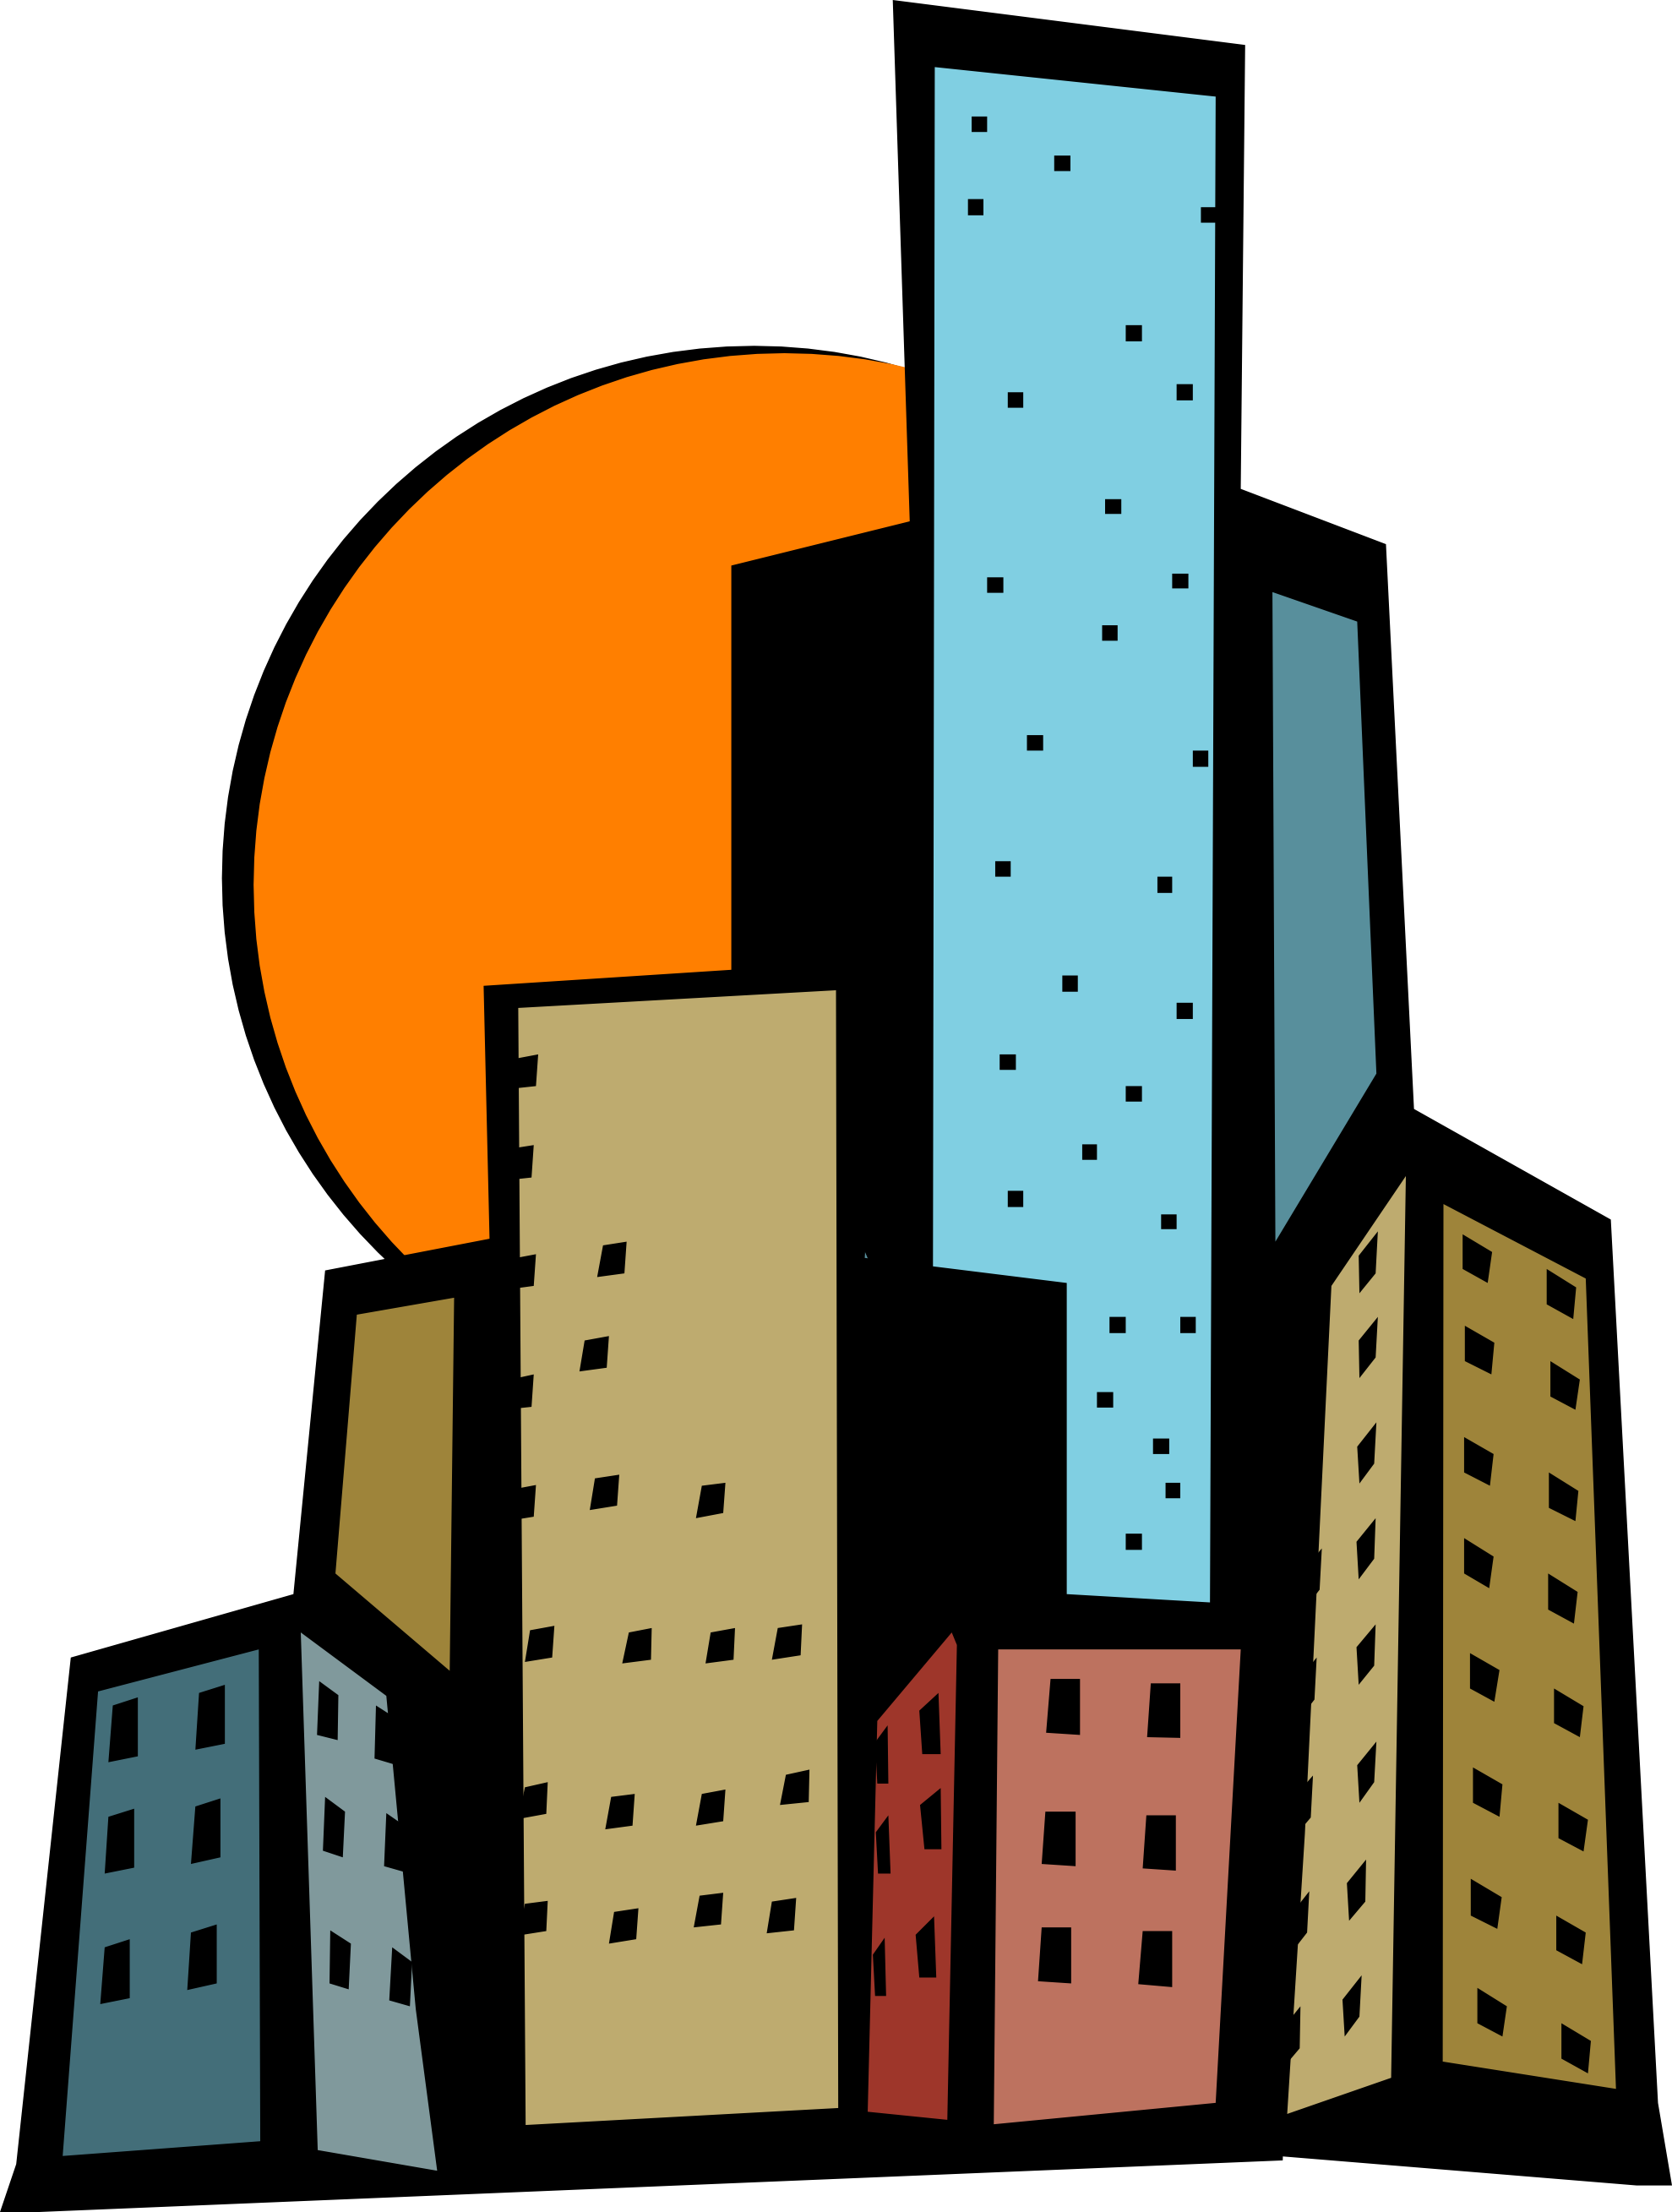 Building cliparts png image freeuse Skyscraper clipart png - ClipartFest image freeuse